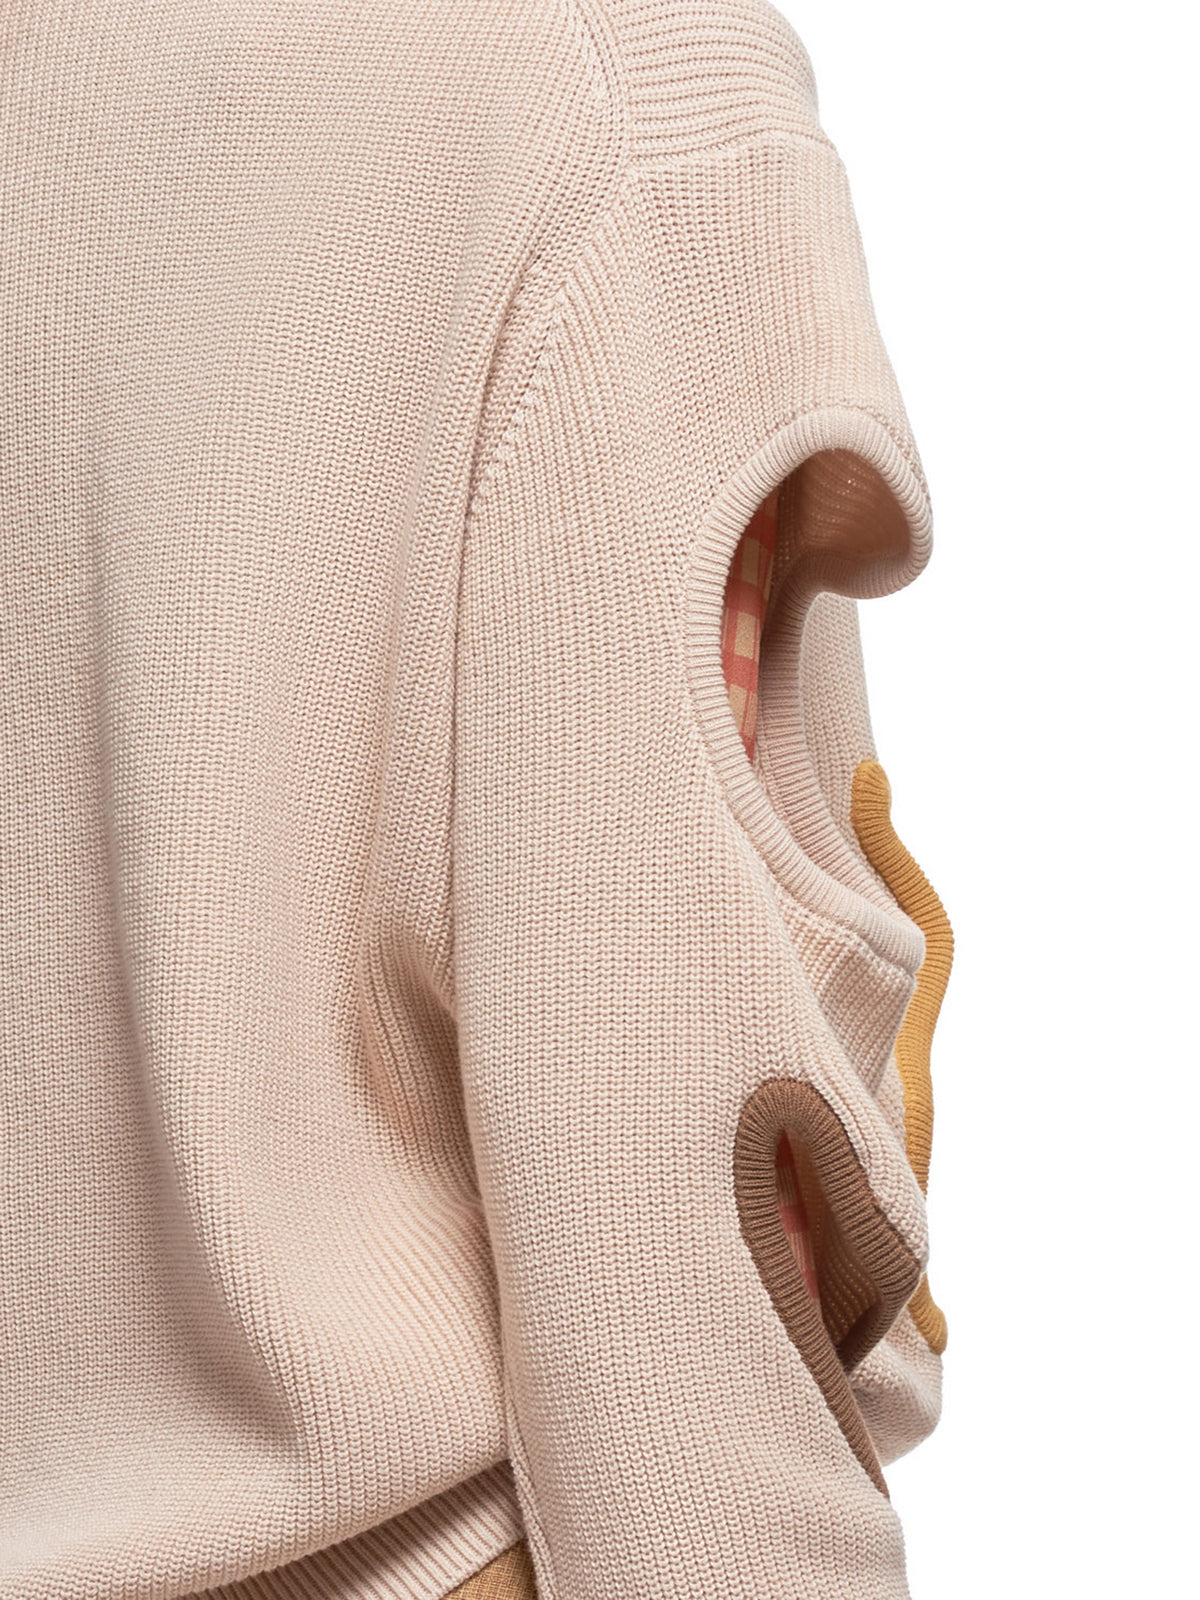 Toga Archives Sweater | H.Lorenzo Detail 2